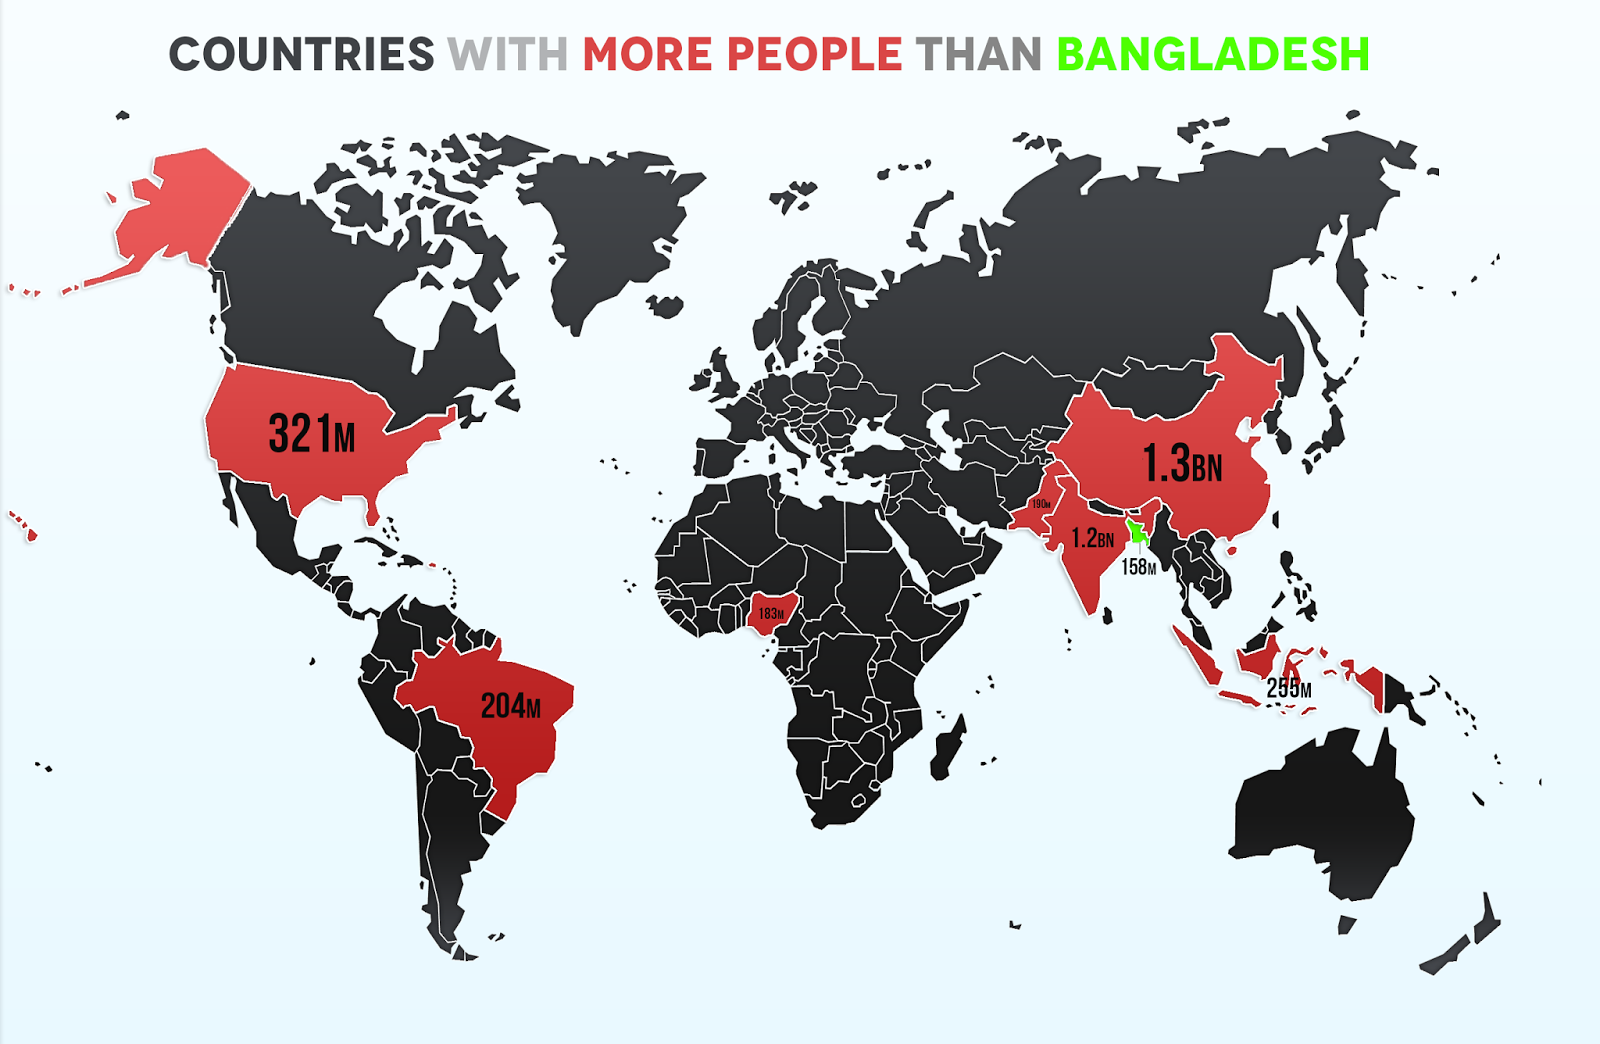 Countries with more people than Bangladesh